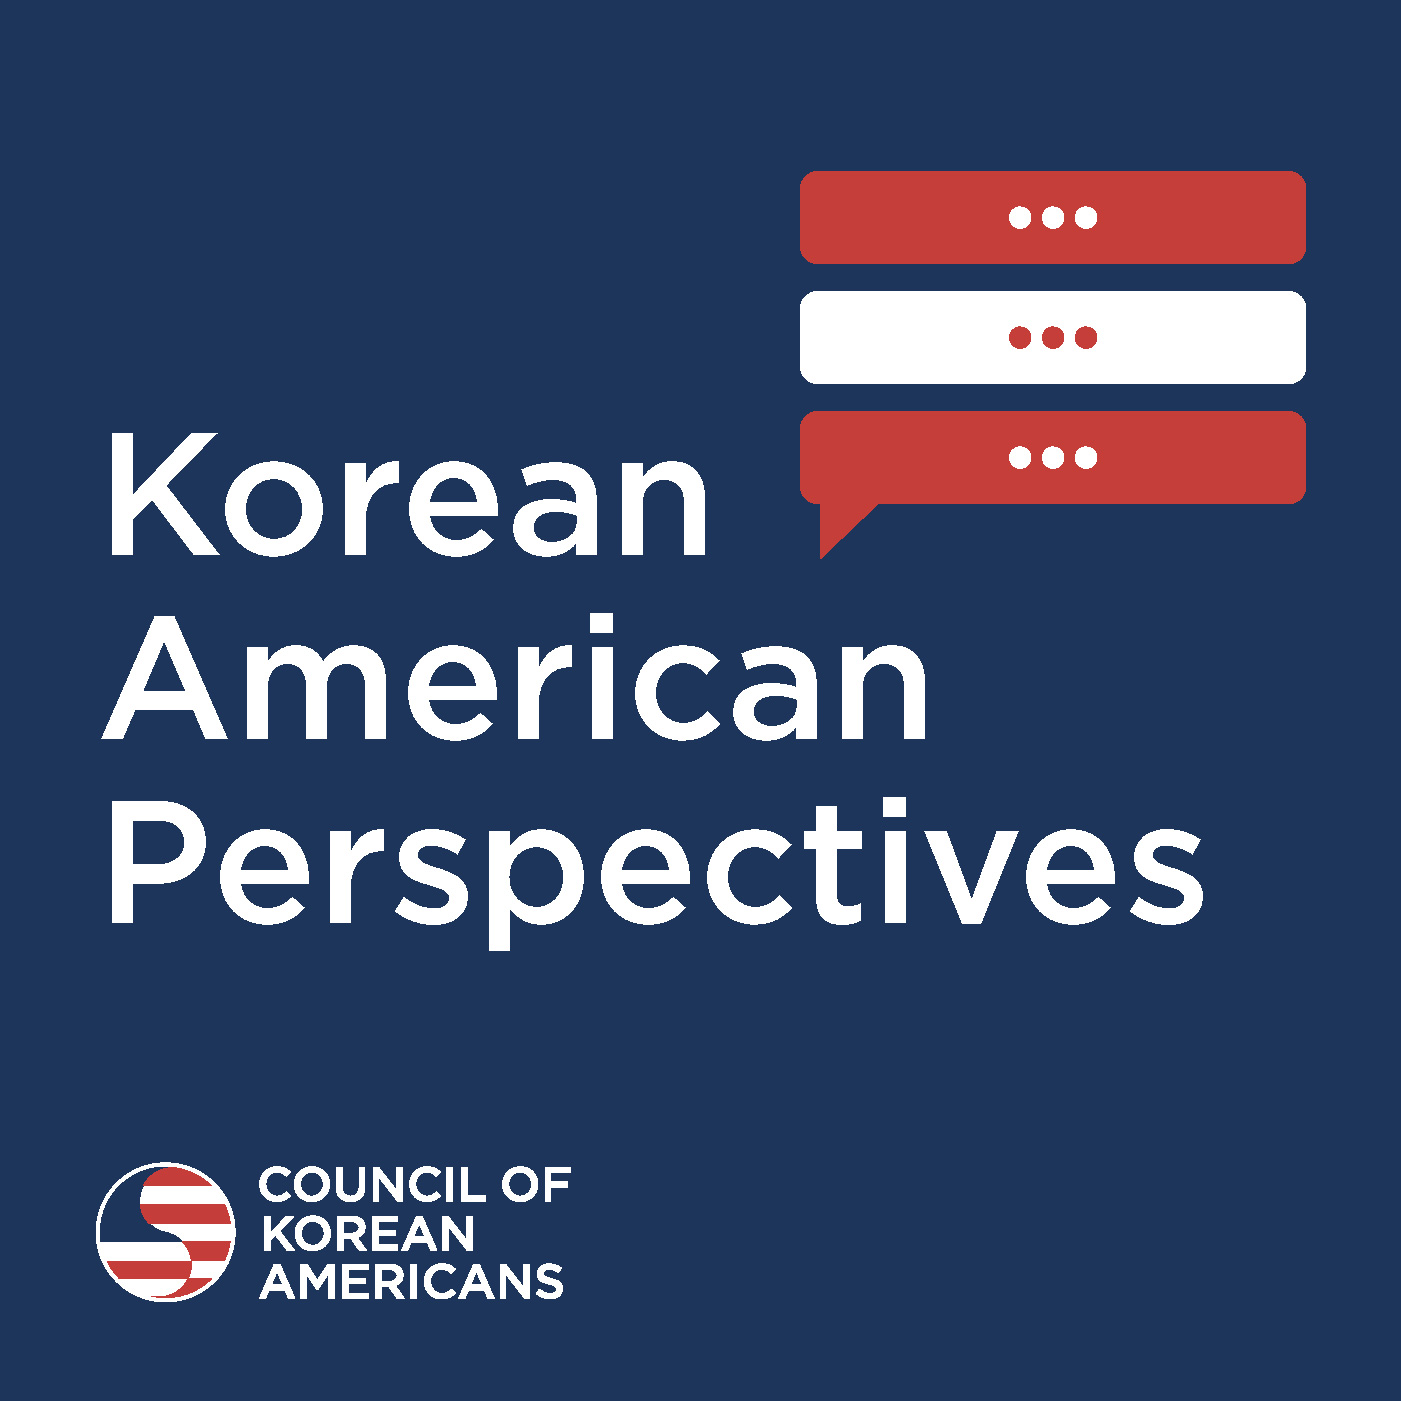 Korean American Perspectives